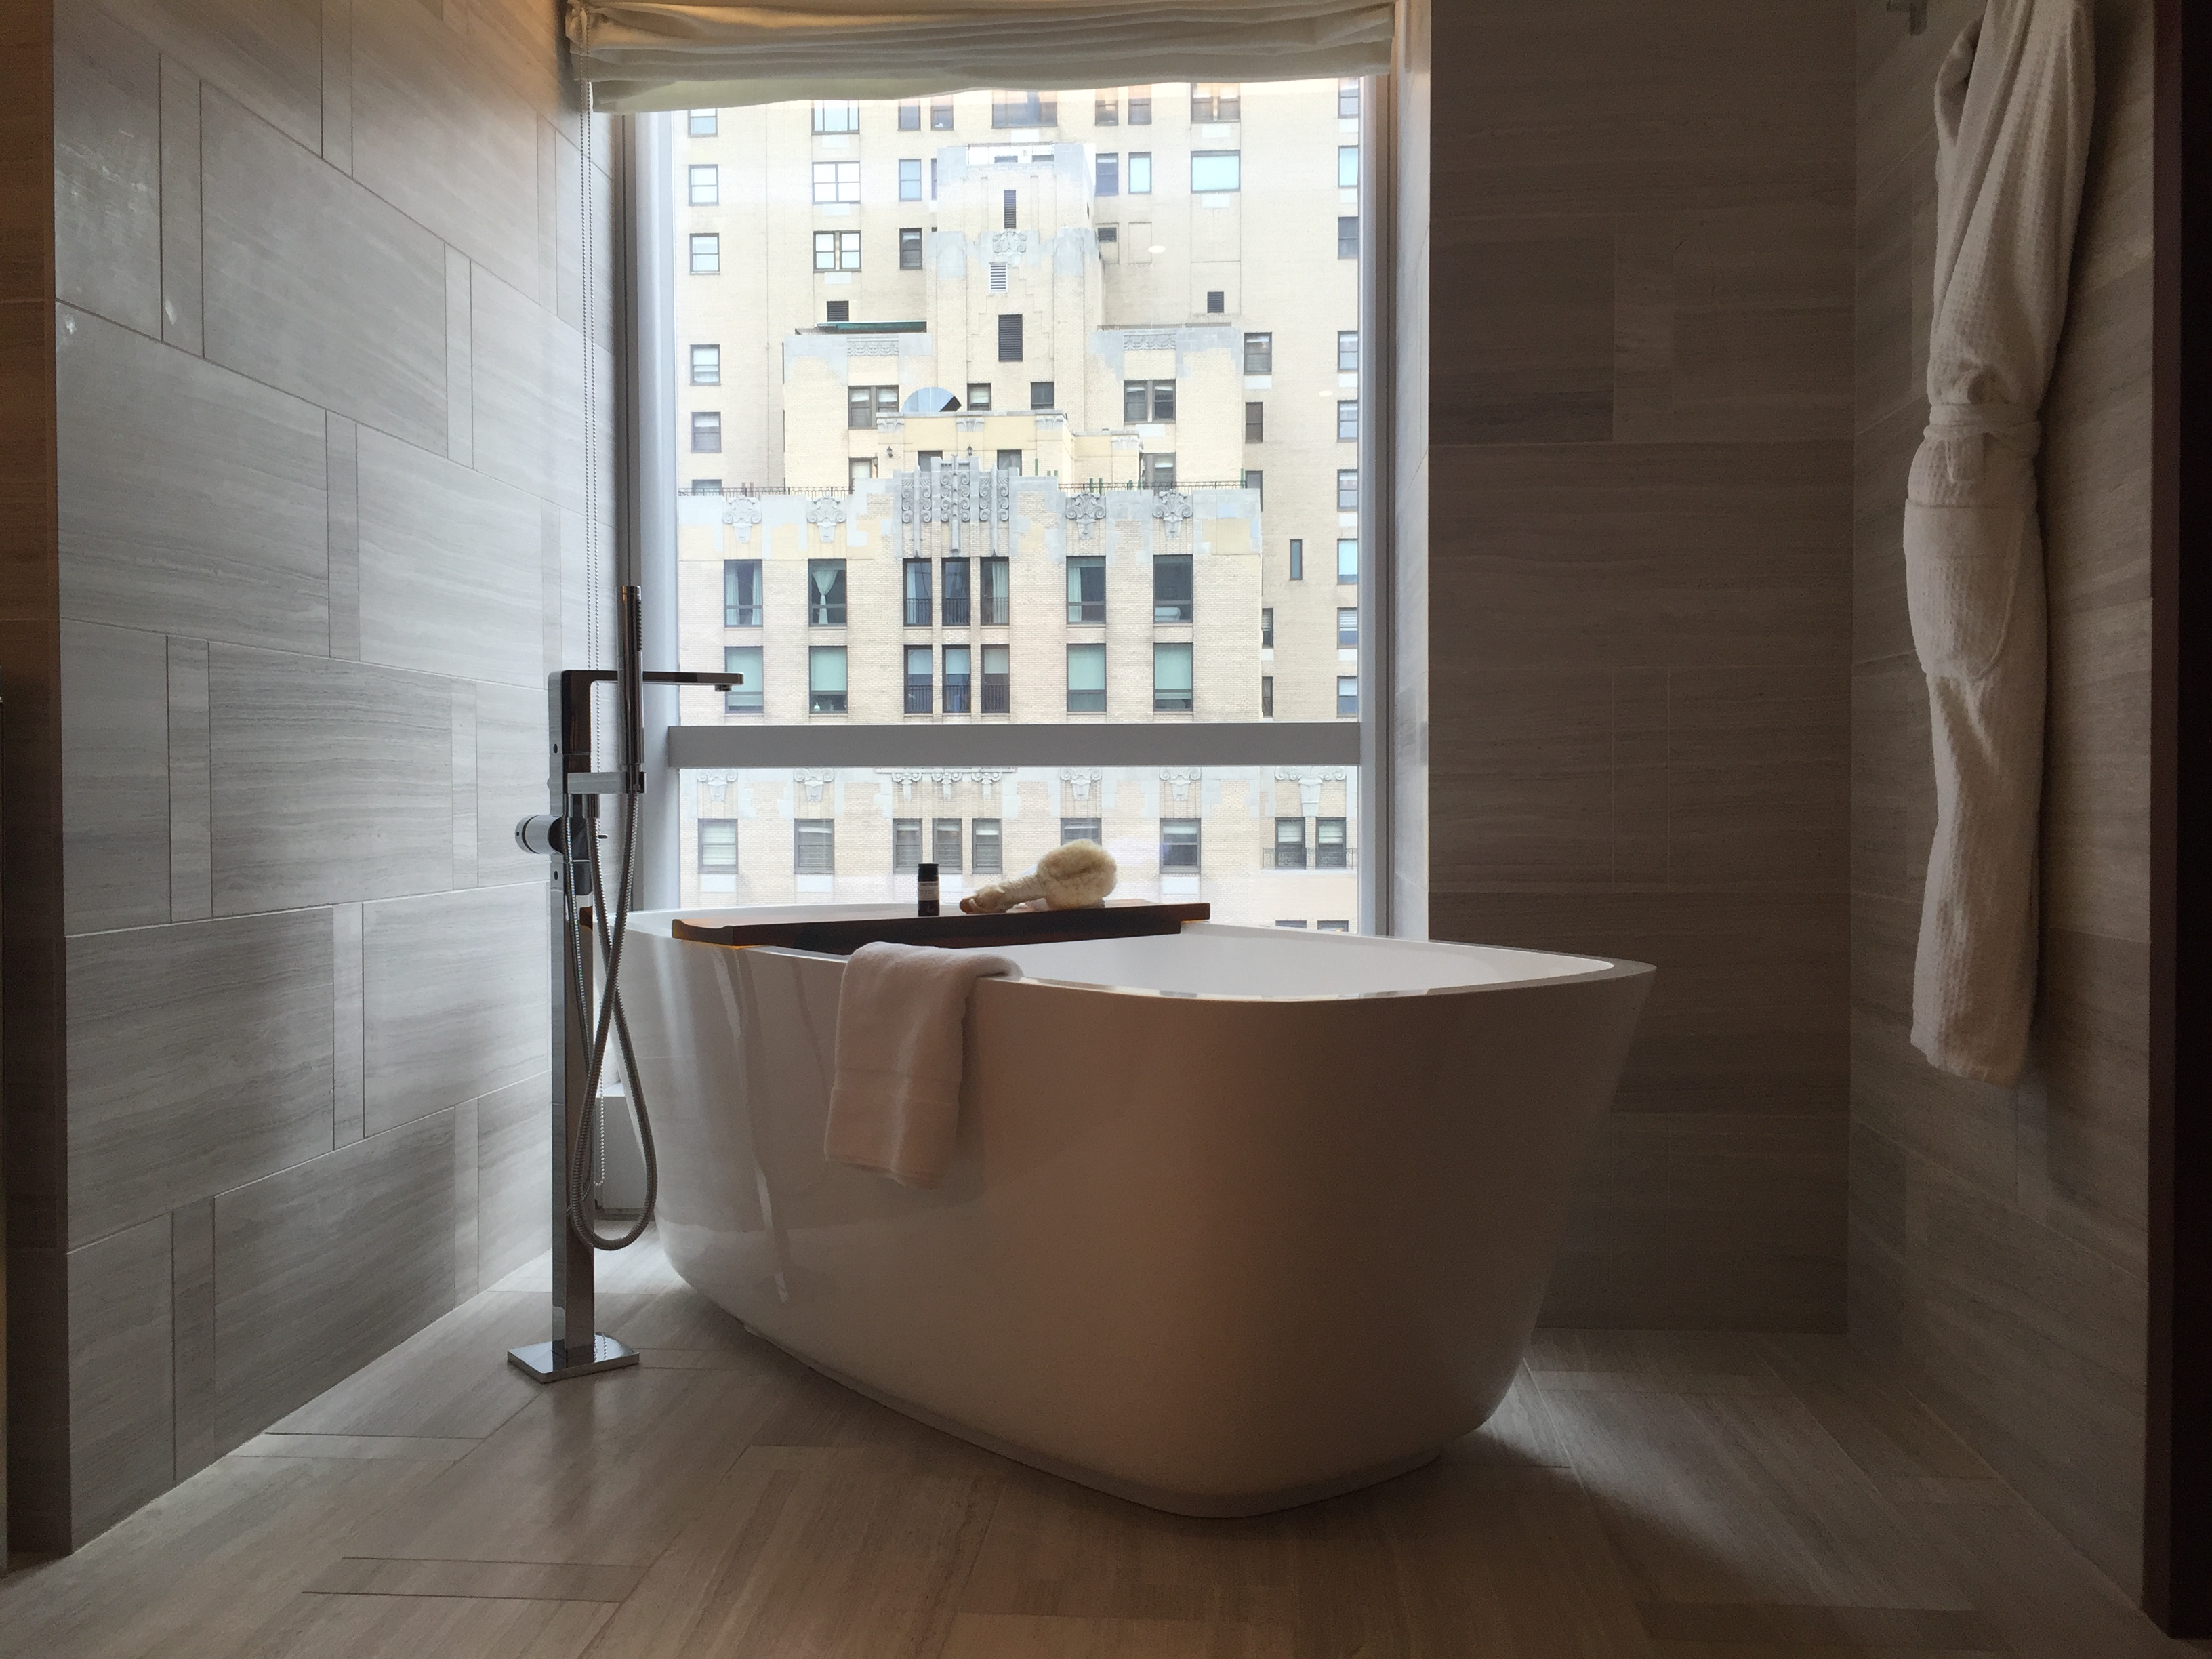 St Regis New York Residences